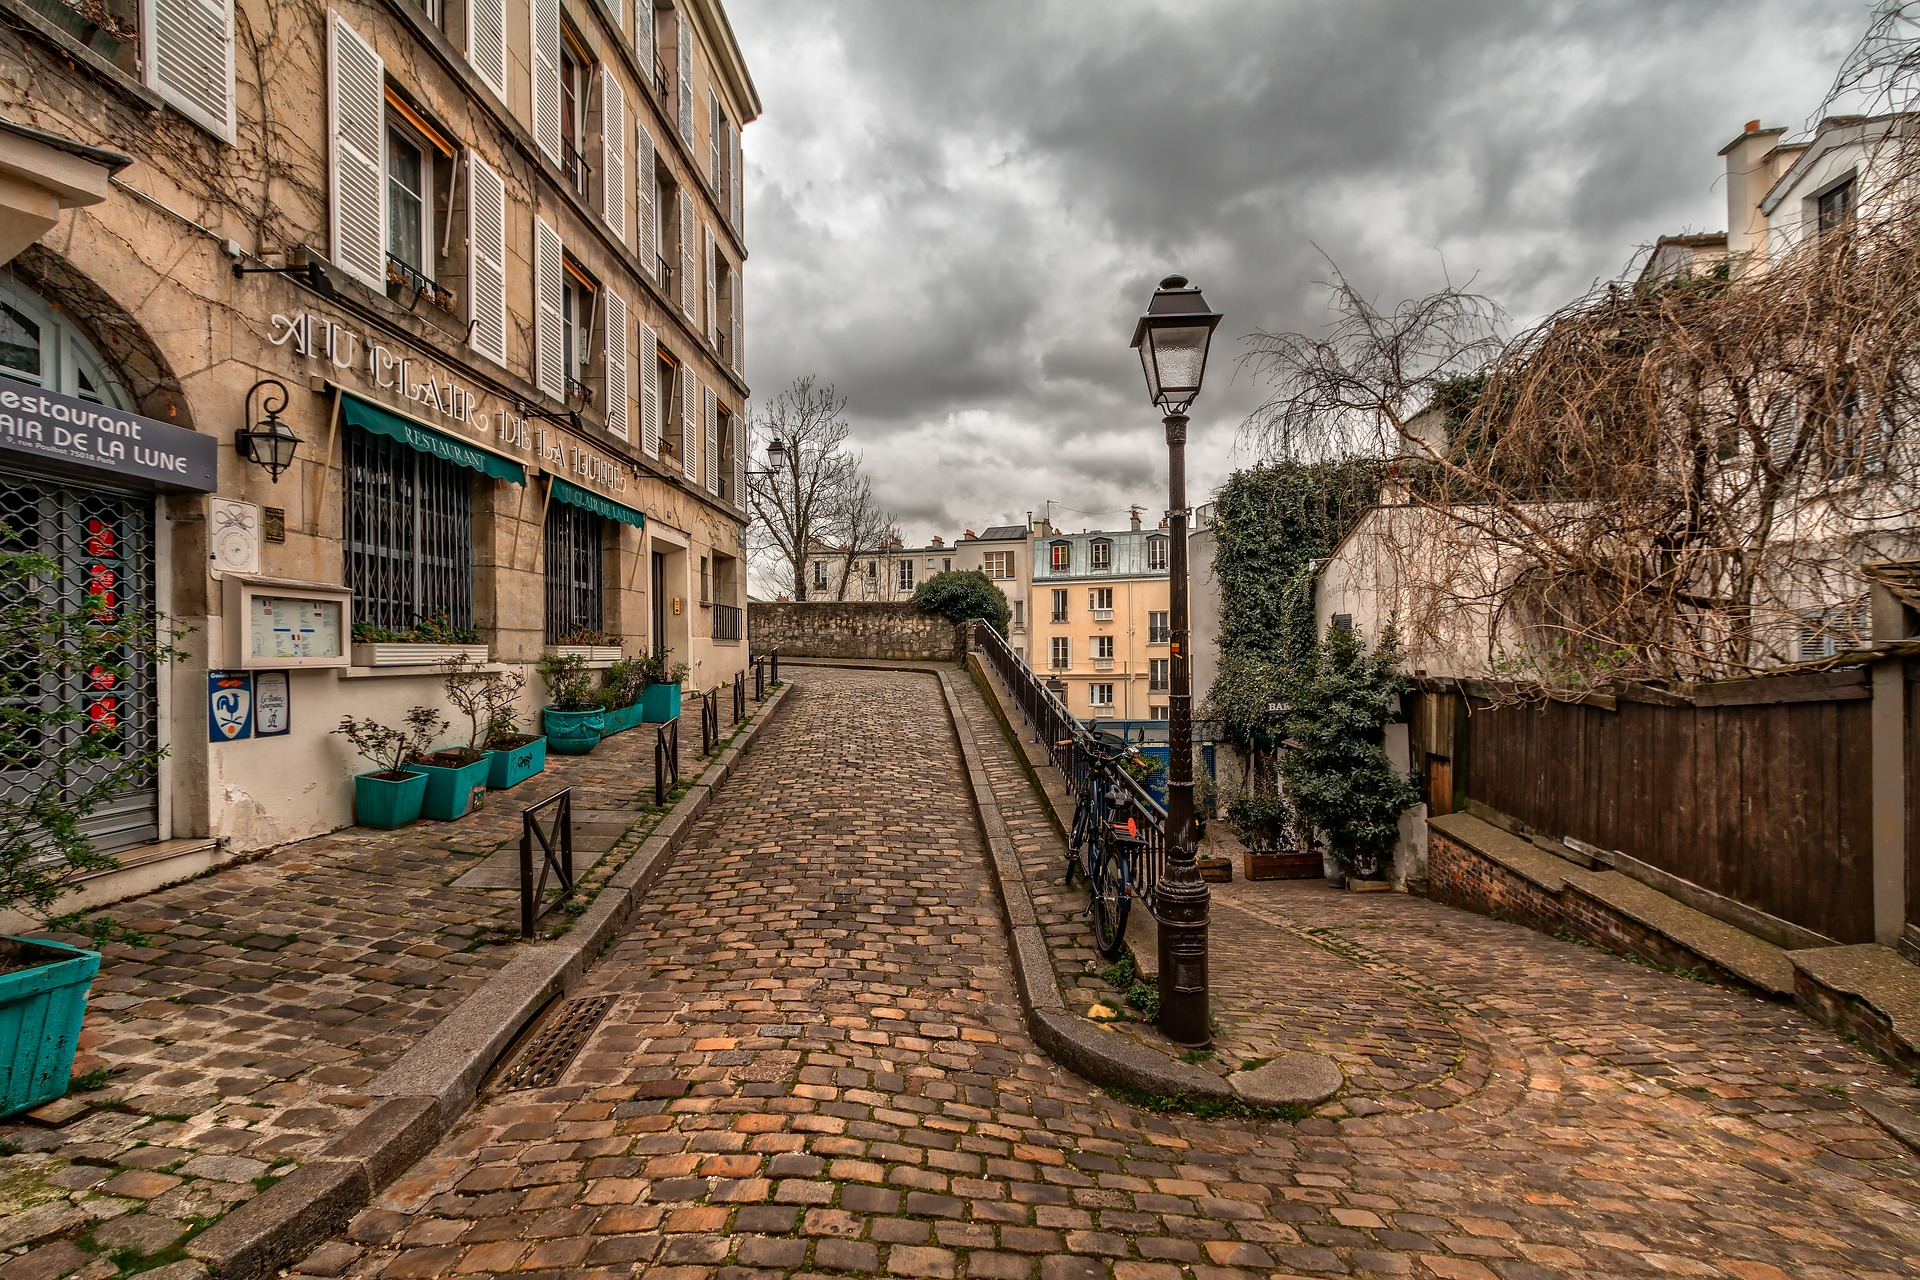 Adorable view on a street in Paris, France